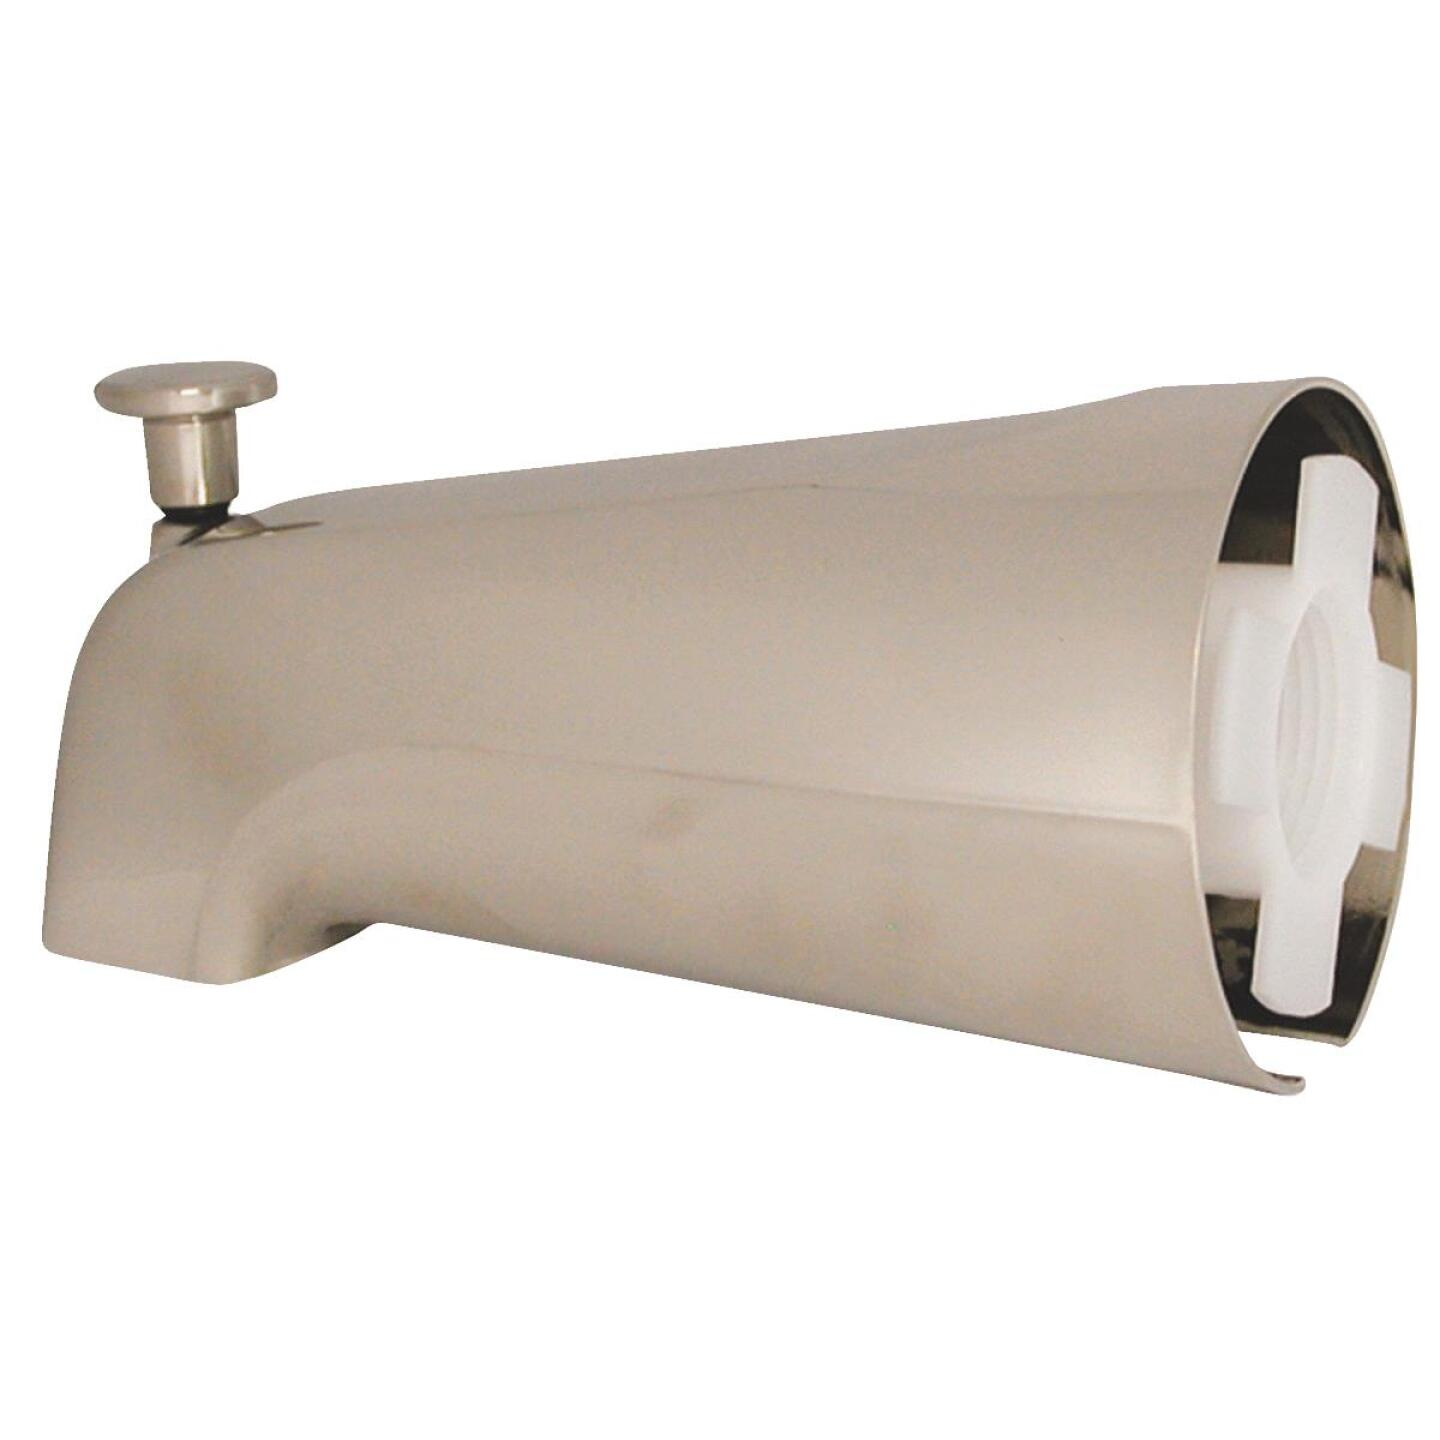 Danco 6 In. Brushed Nickel Bathtub Spout with Diverter Image 1